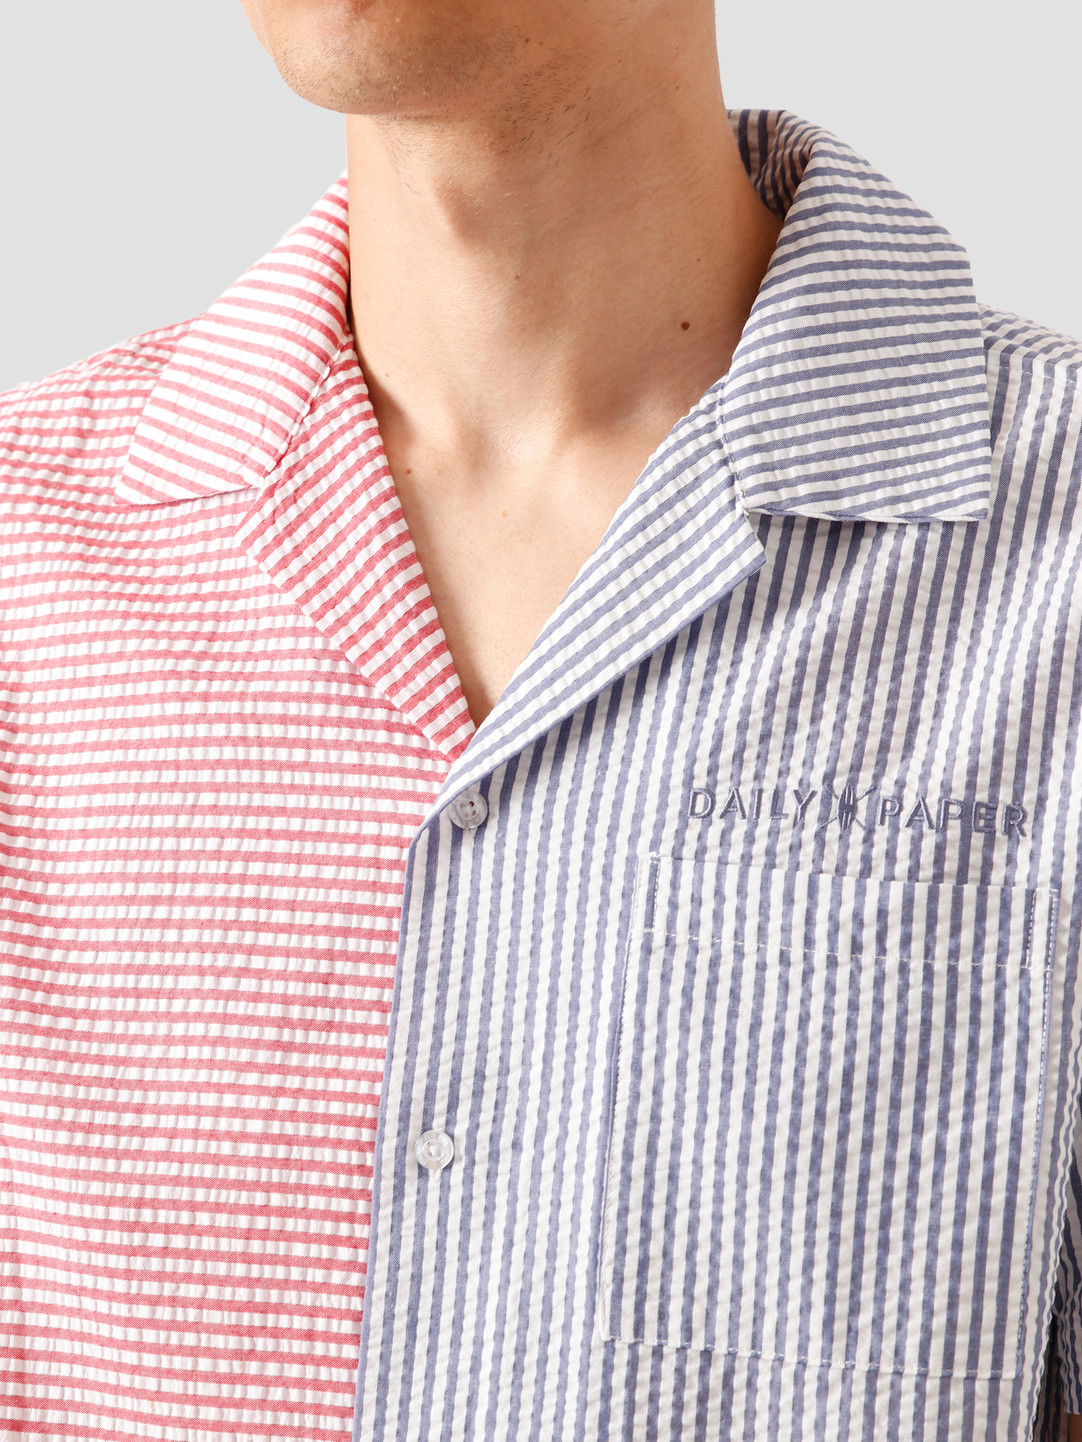 Daily Paper Daily Paper Reseer Shirt Red Blue Striped 20S1AC53-02-7